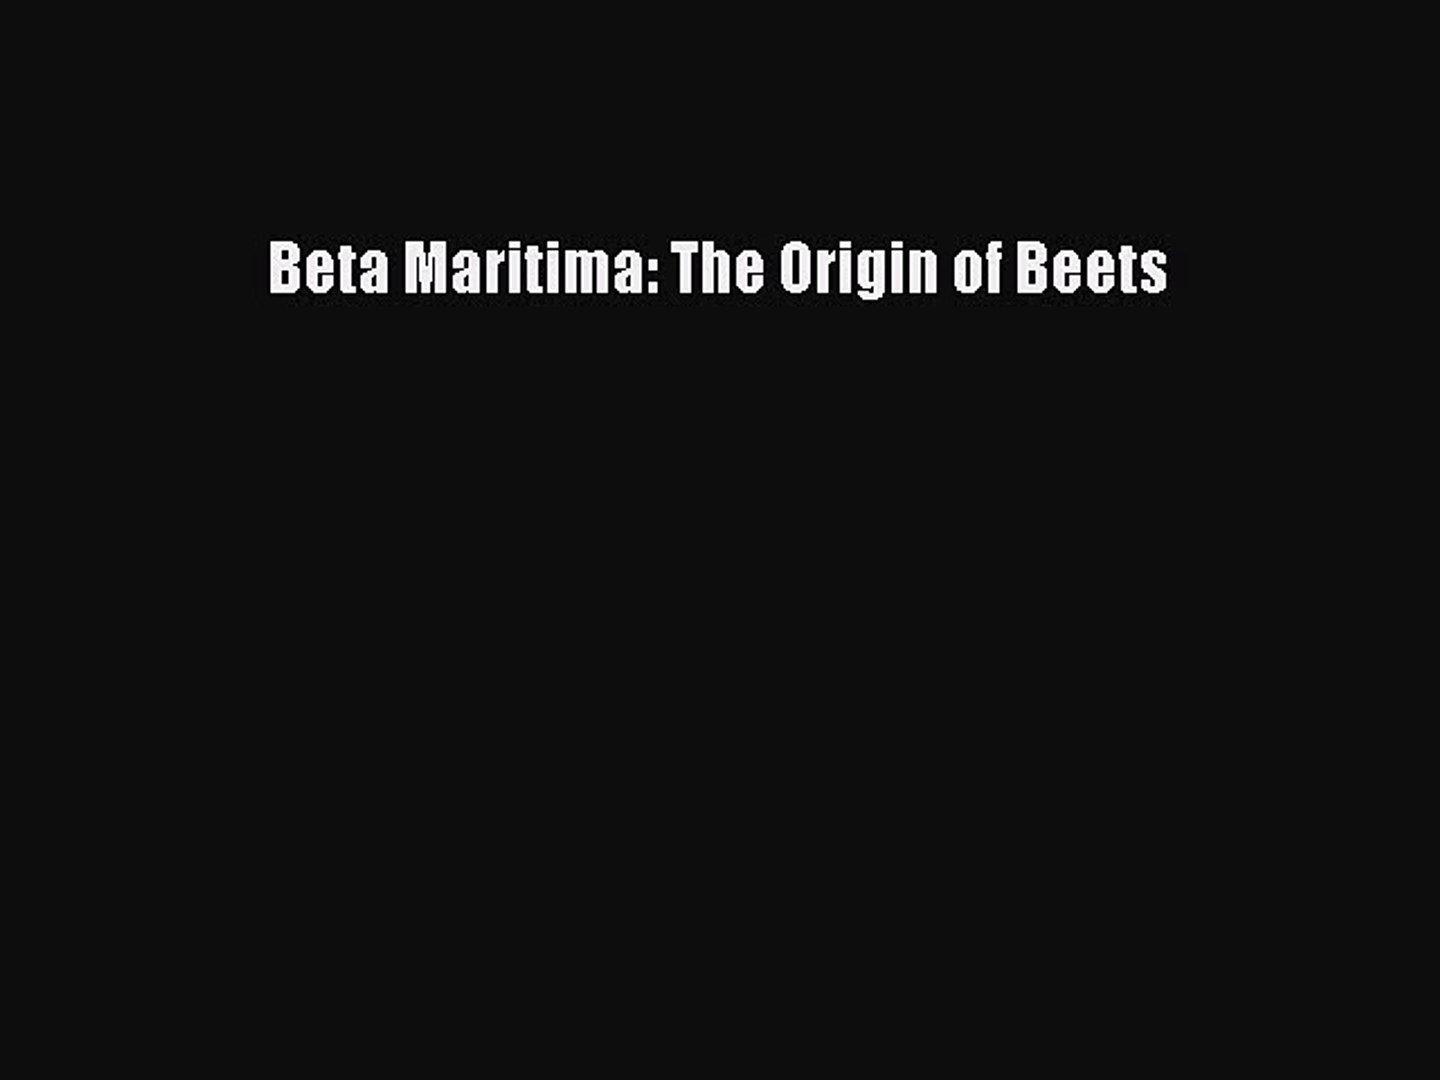 Beta Maritima: The Origin of Beets Free Download Book